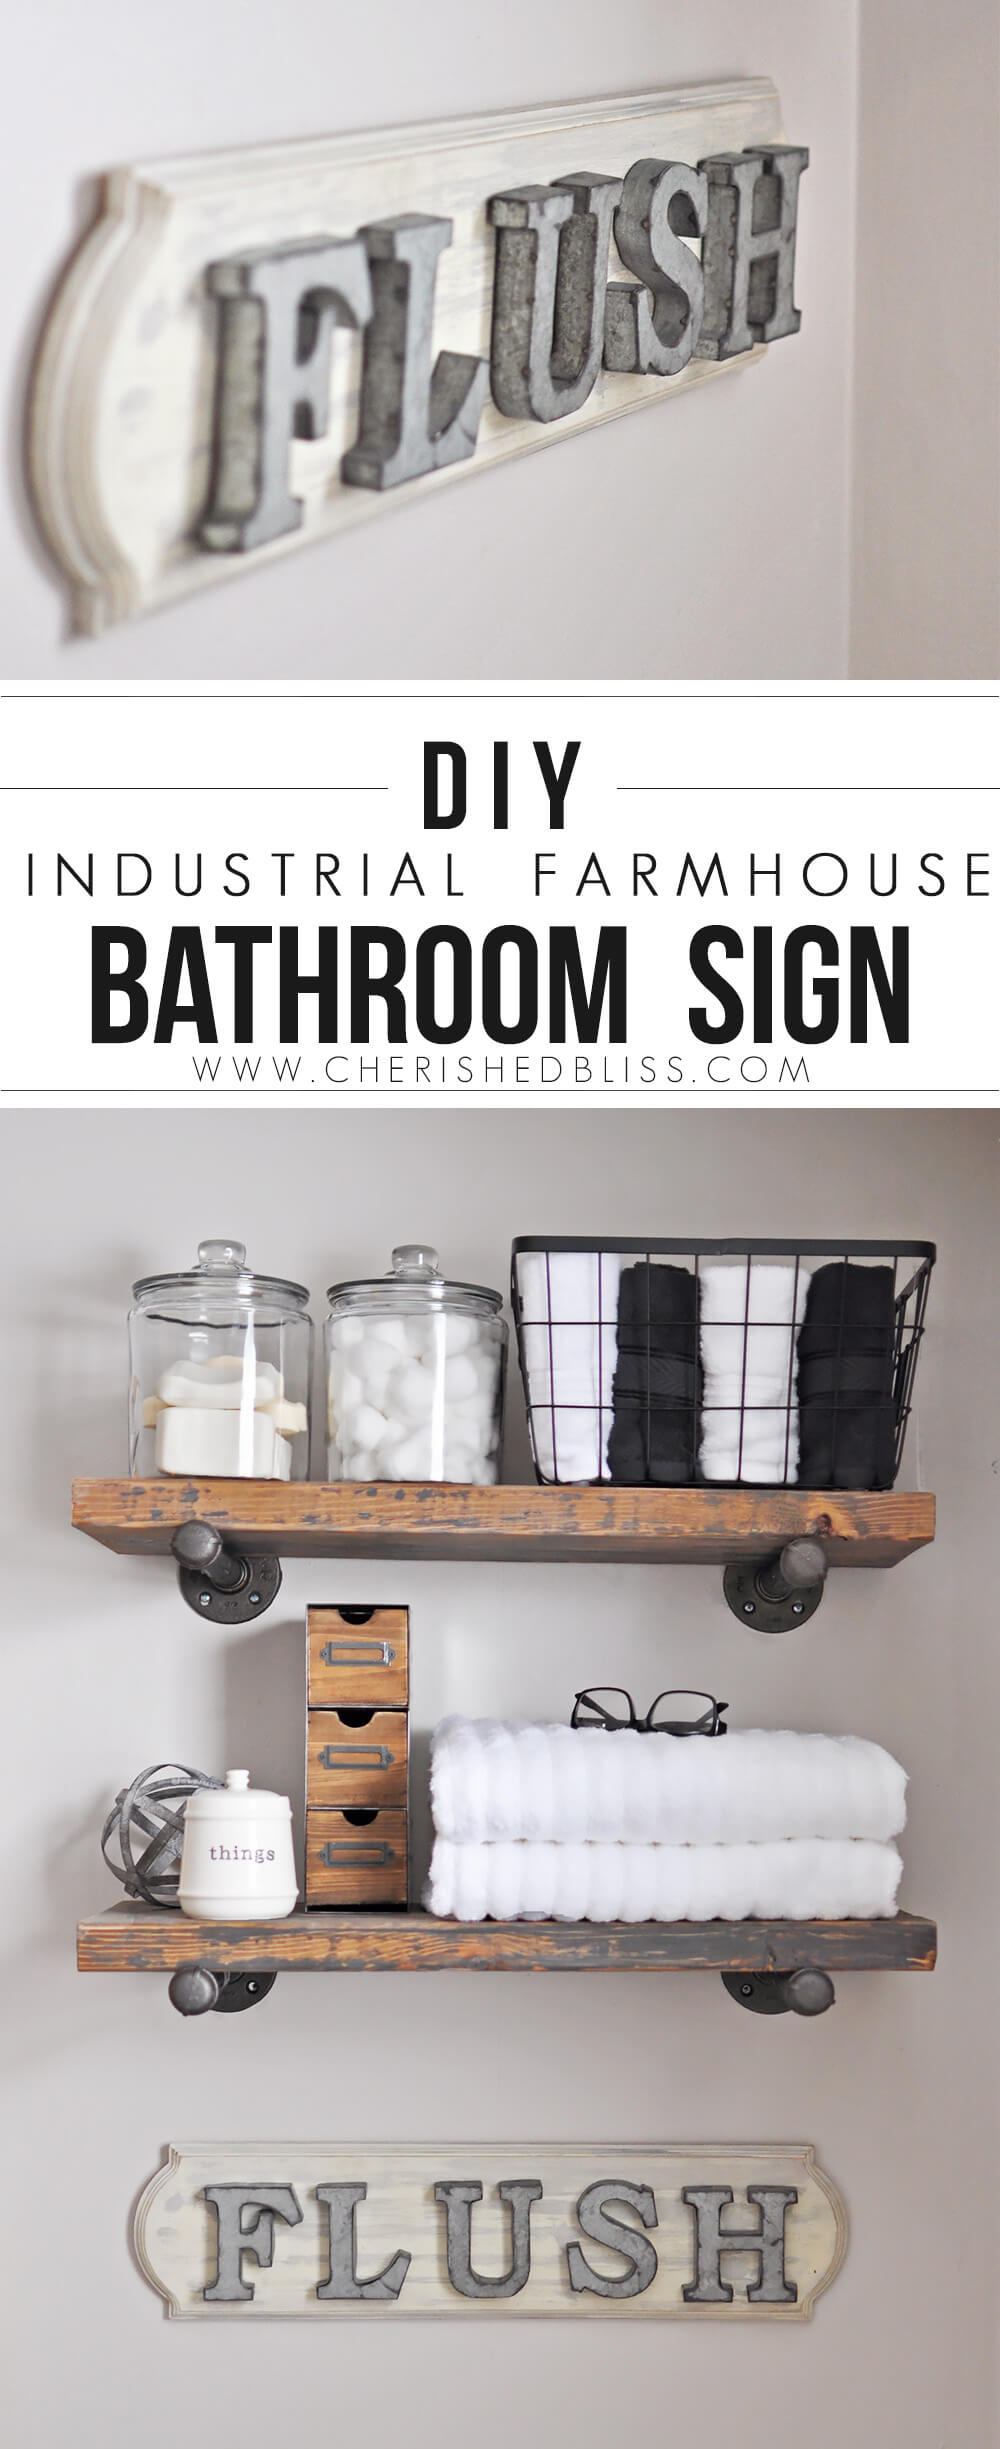 Industrial Farm House Bathroom Sign